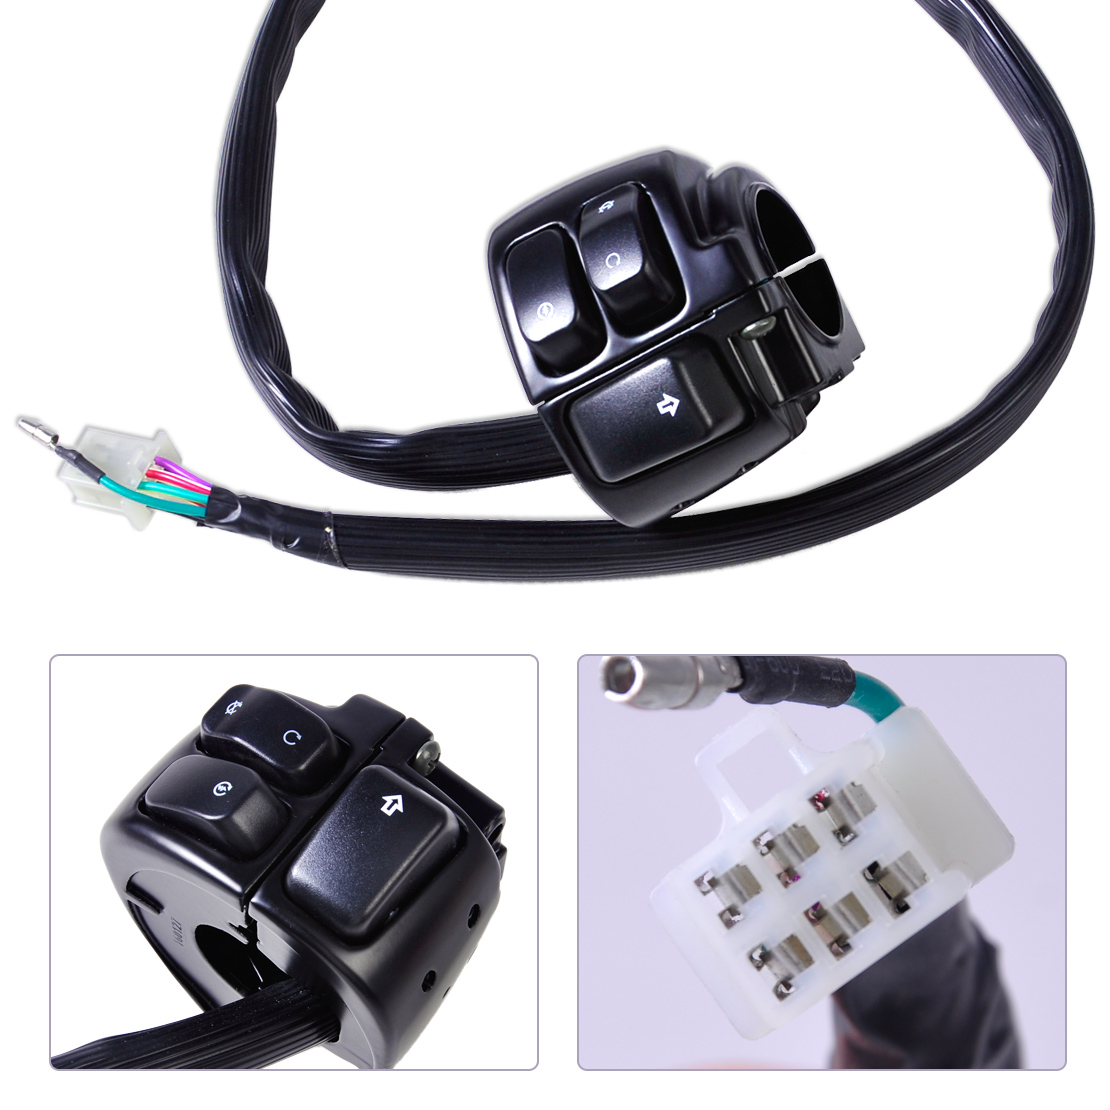 Buy Sportster Wiring Harness And Get Free Shipping On Rivco